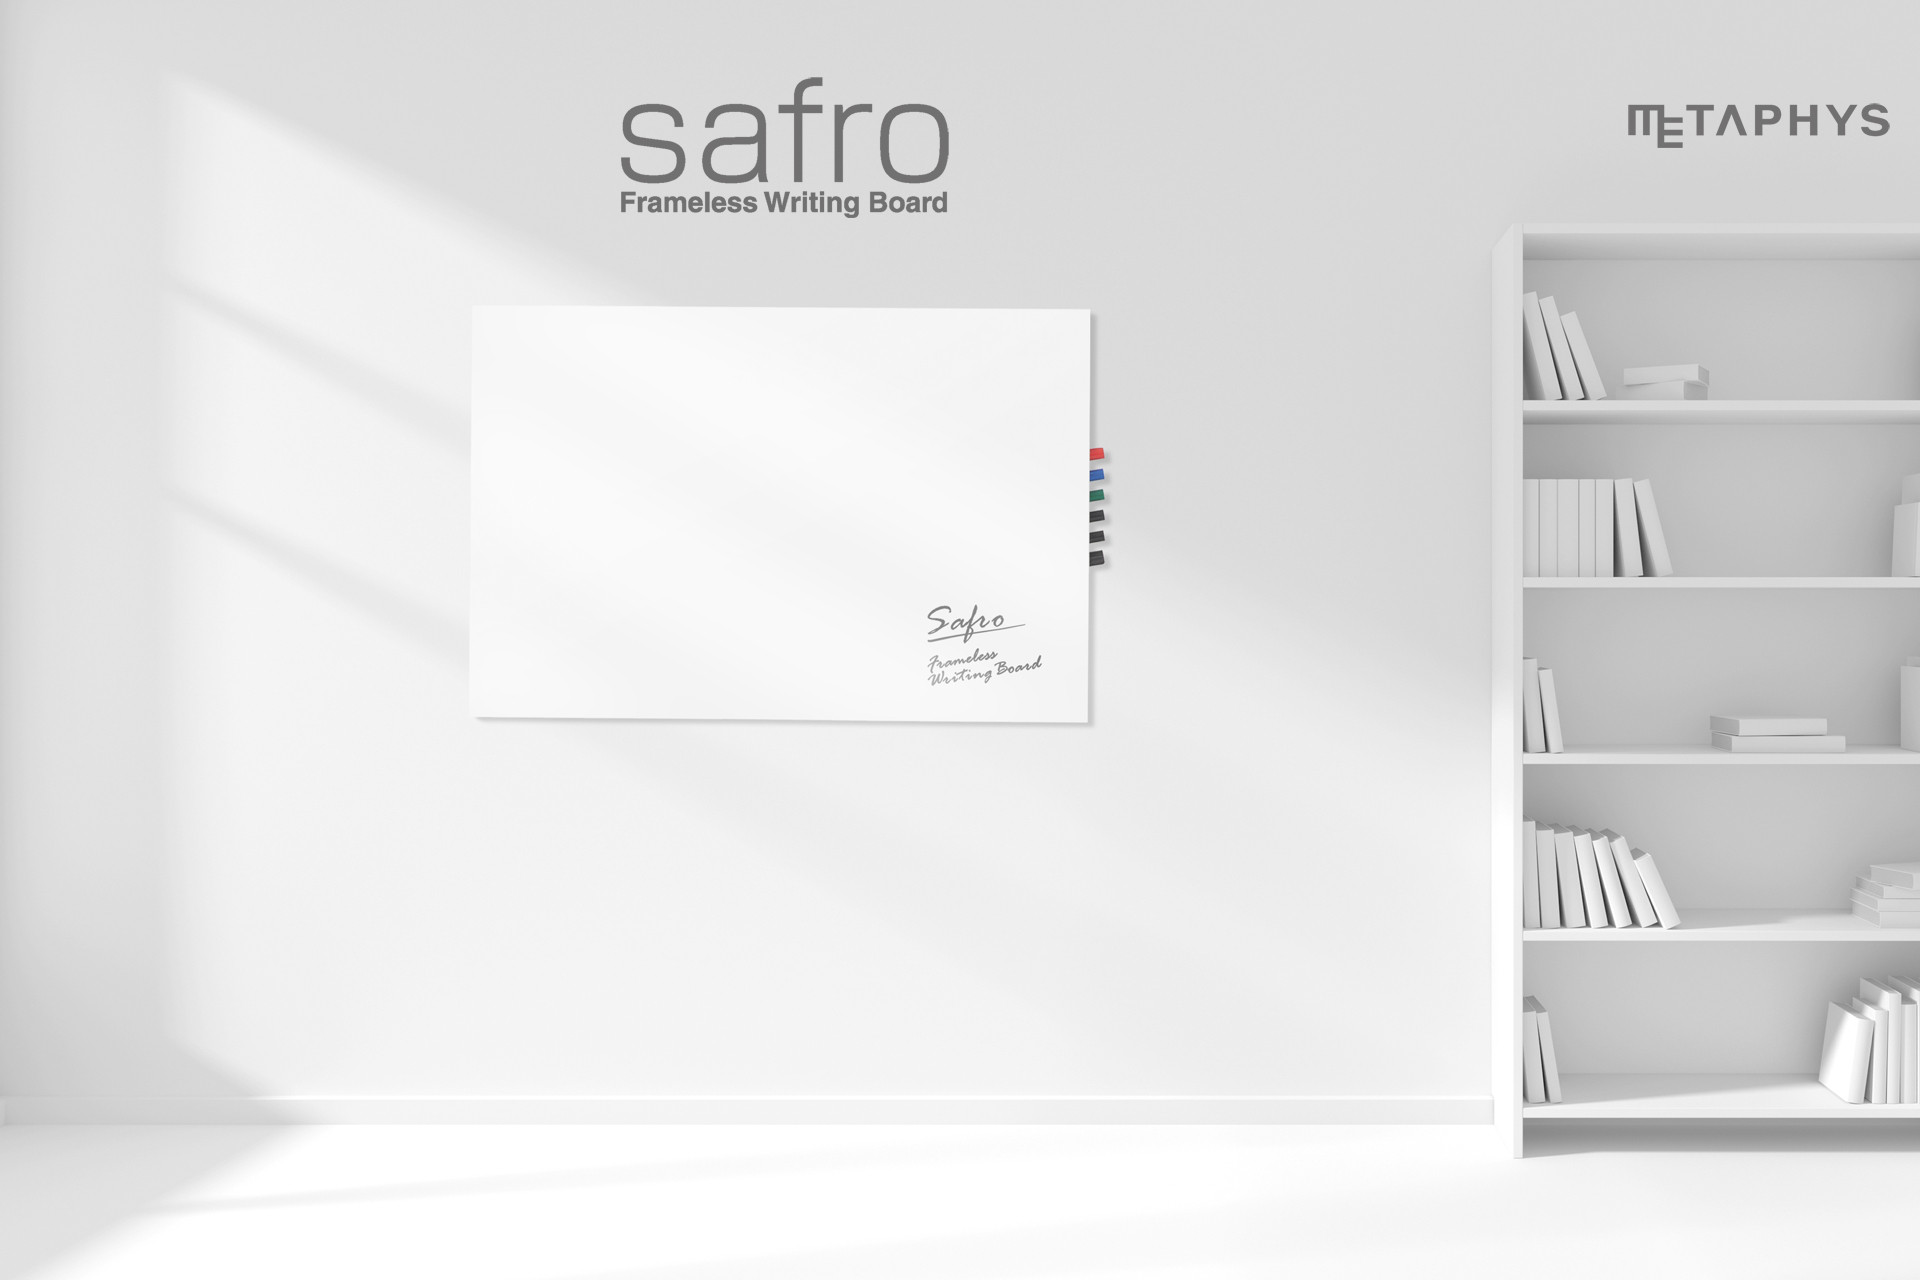 safro ~ Frameless Writing Board ~